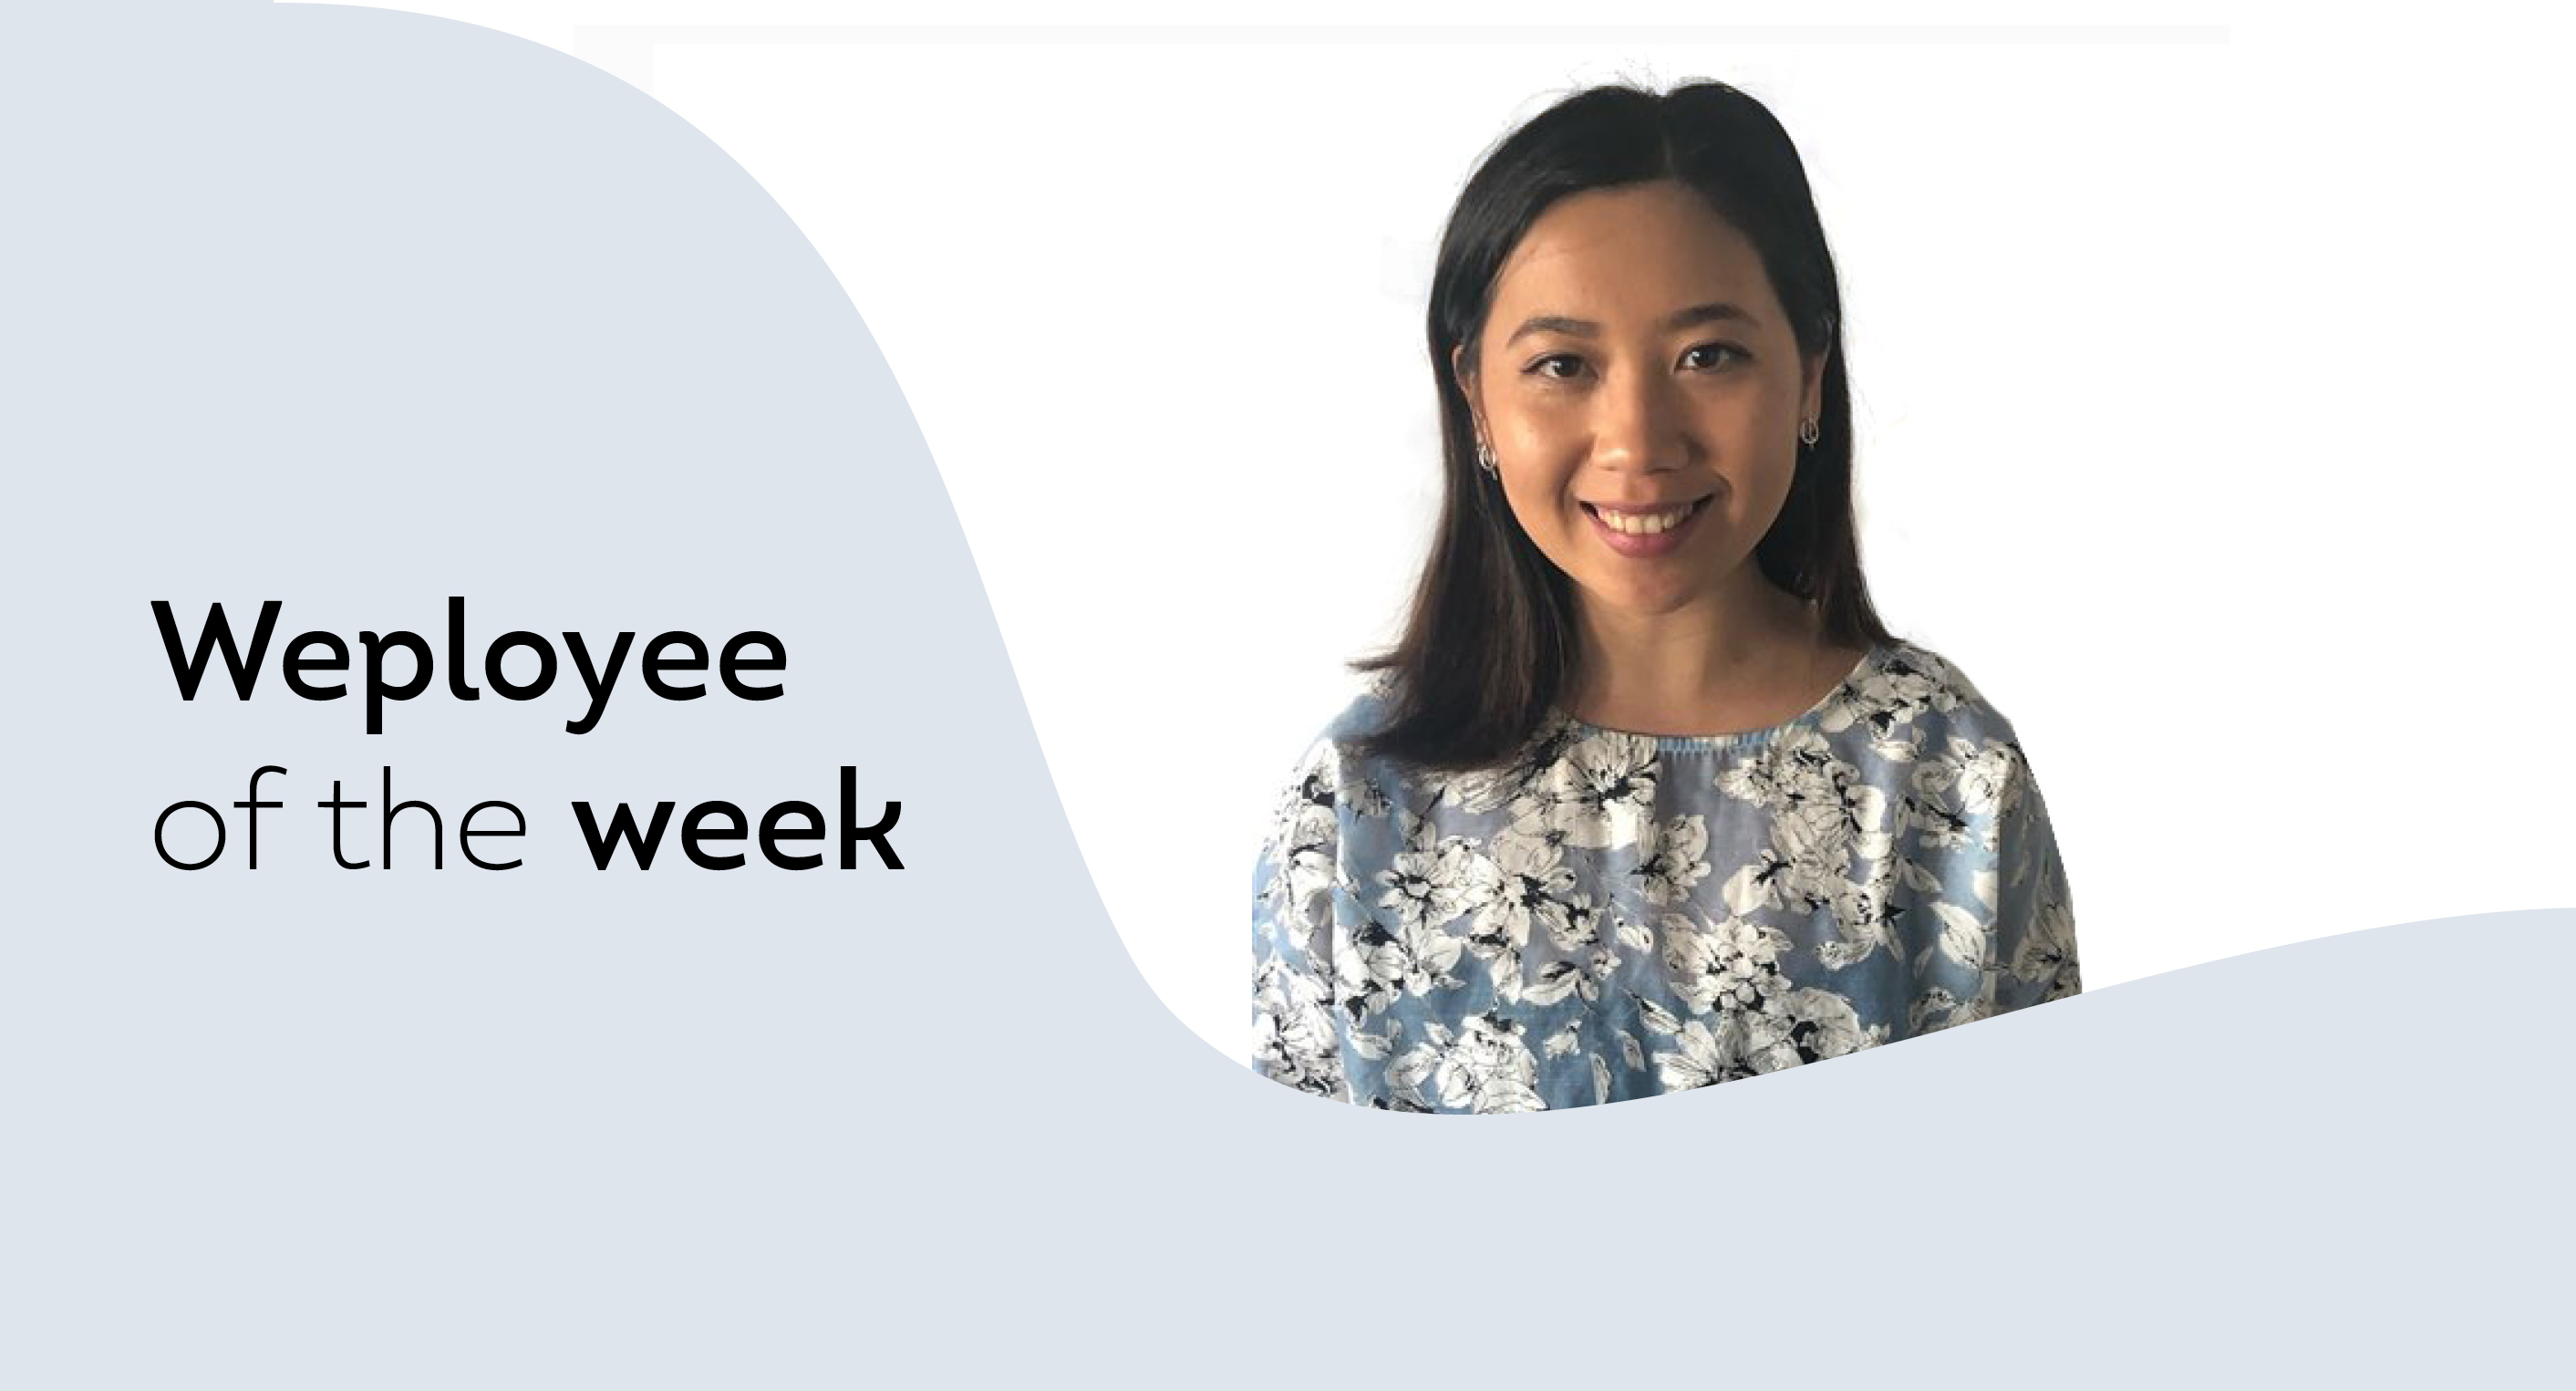 Weployee of the Week Thuy - Featured Image-1